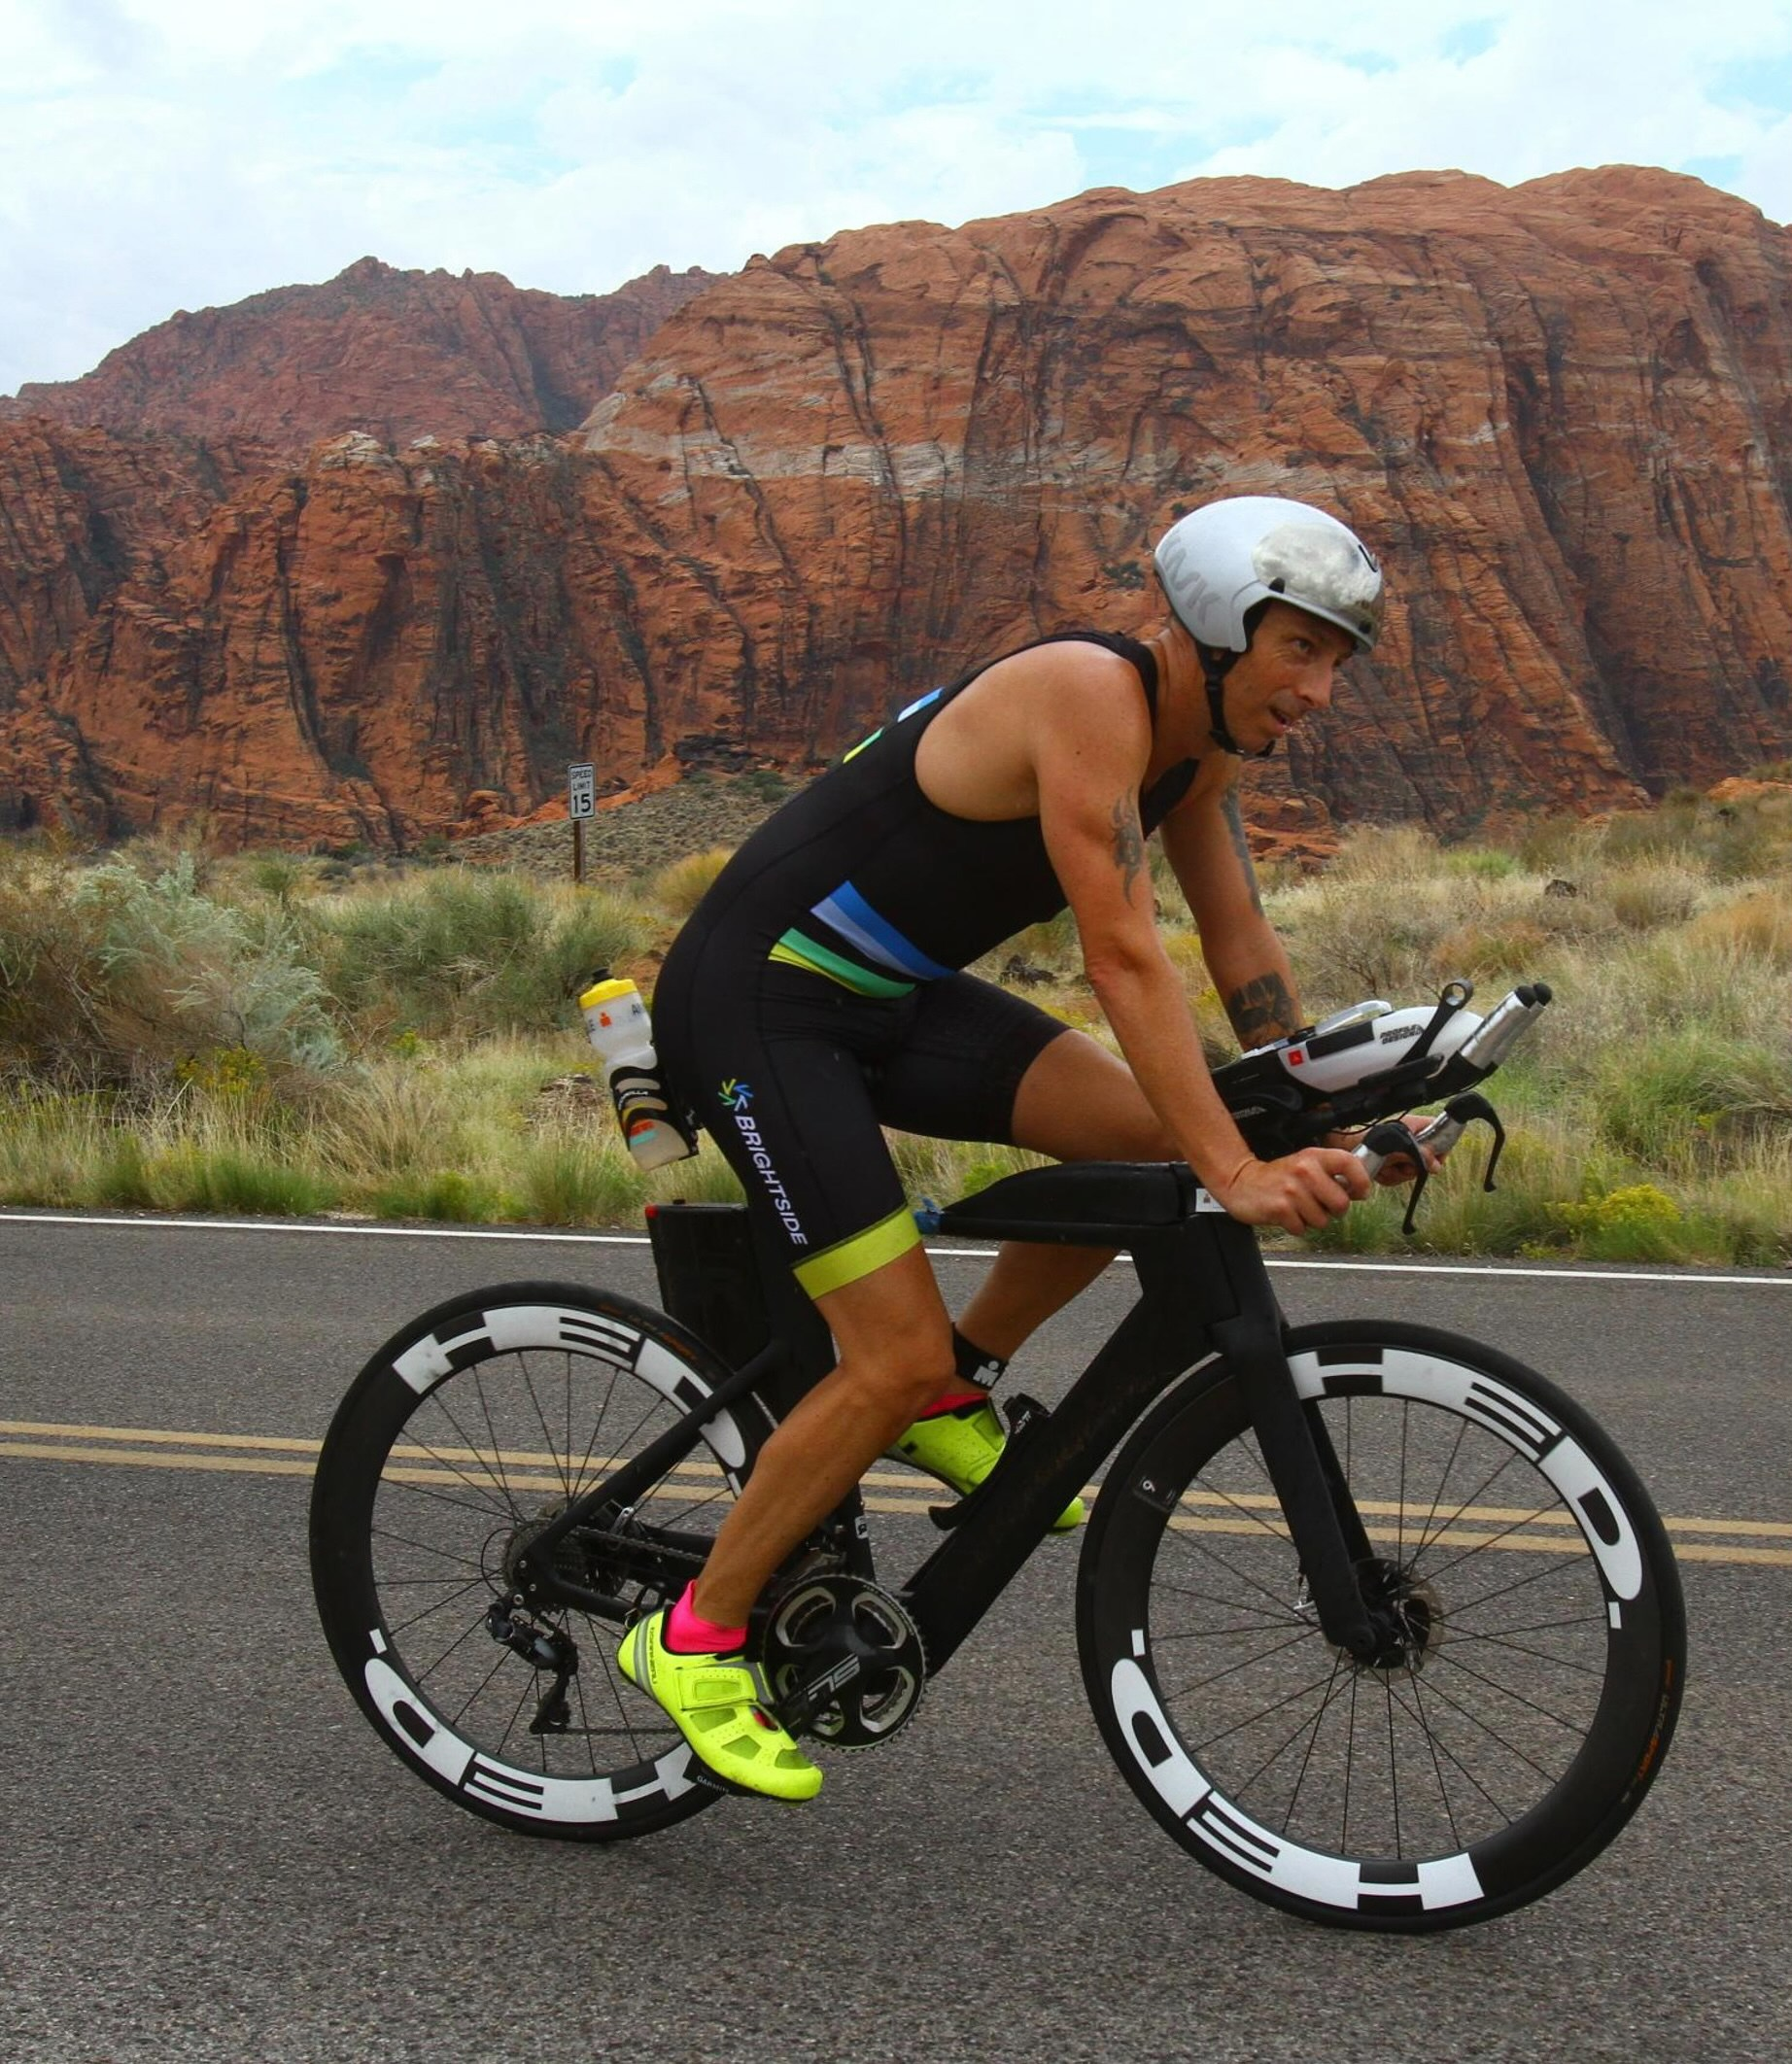 Brett Heyes, Credico's Director of National Accounts, rides past the red rocks of Utah. He is wearing a Team Bright Side tri kit, a silver helmet, and hi-viz yellow cycling shoes on a black bicycle with aero bars.